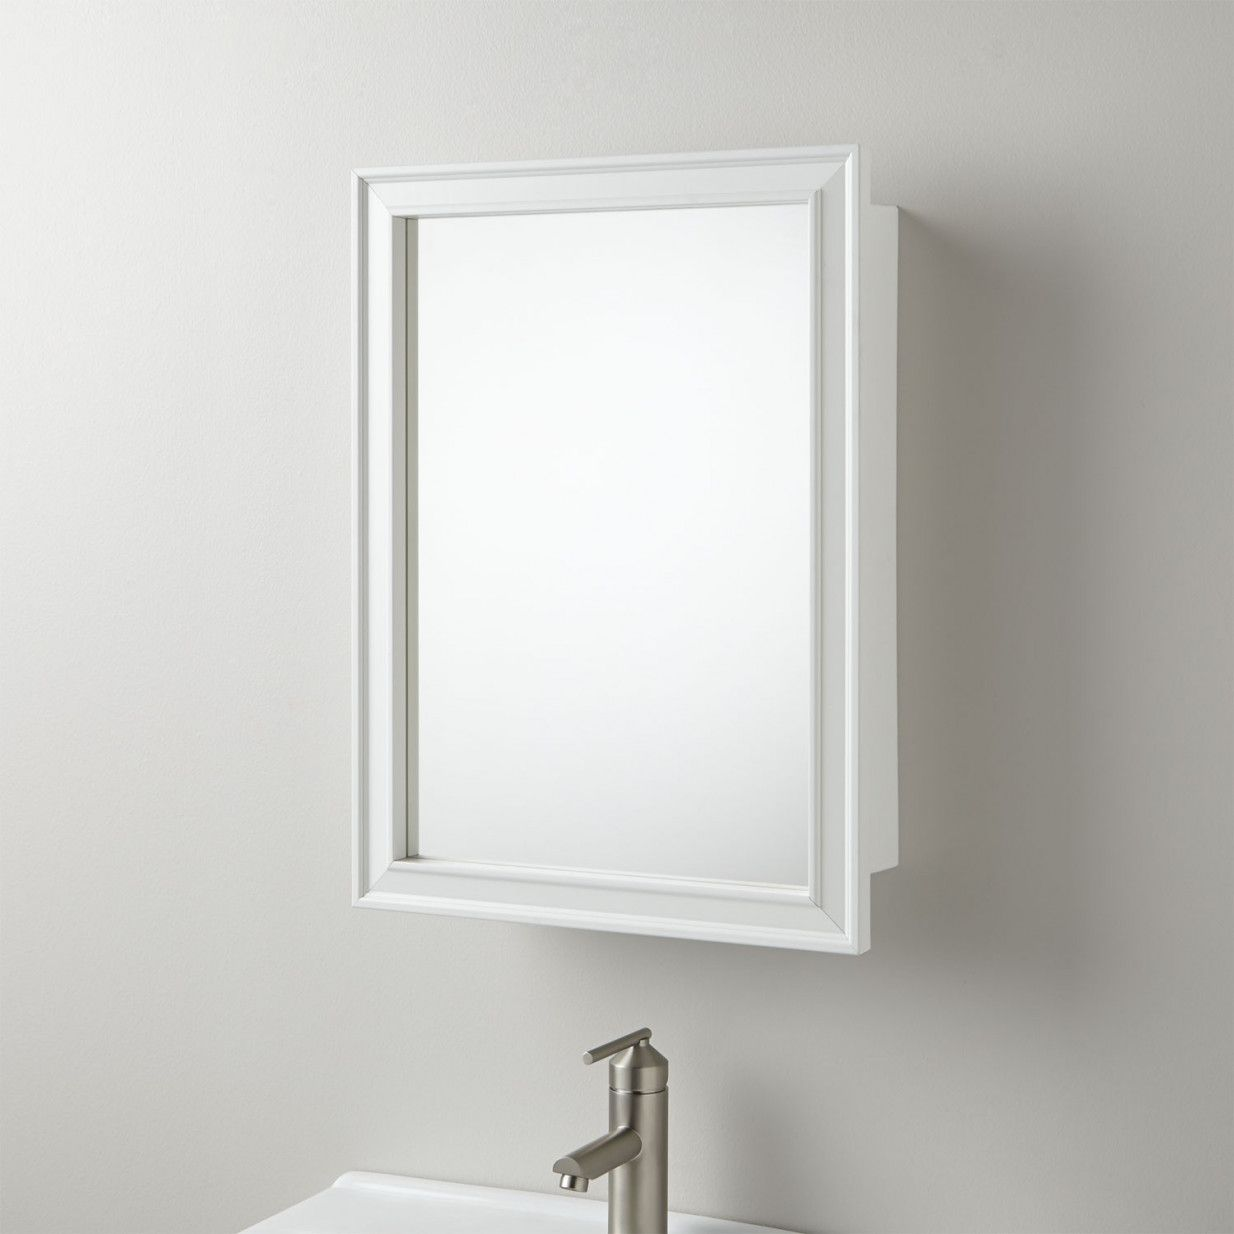 50+ Recessed Bathroom Medicine Cabinets with Mirrors - Best Interior ...